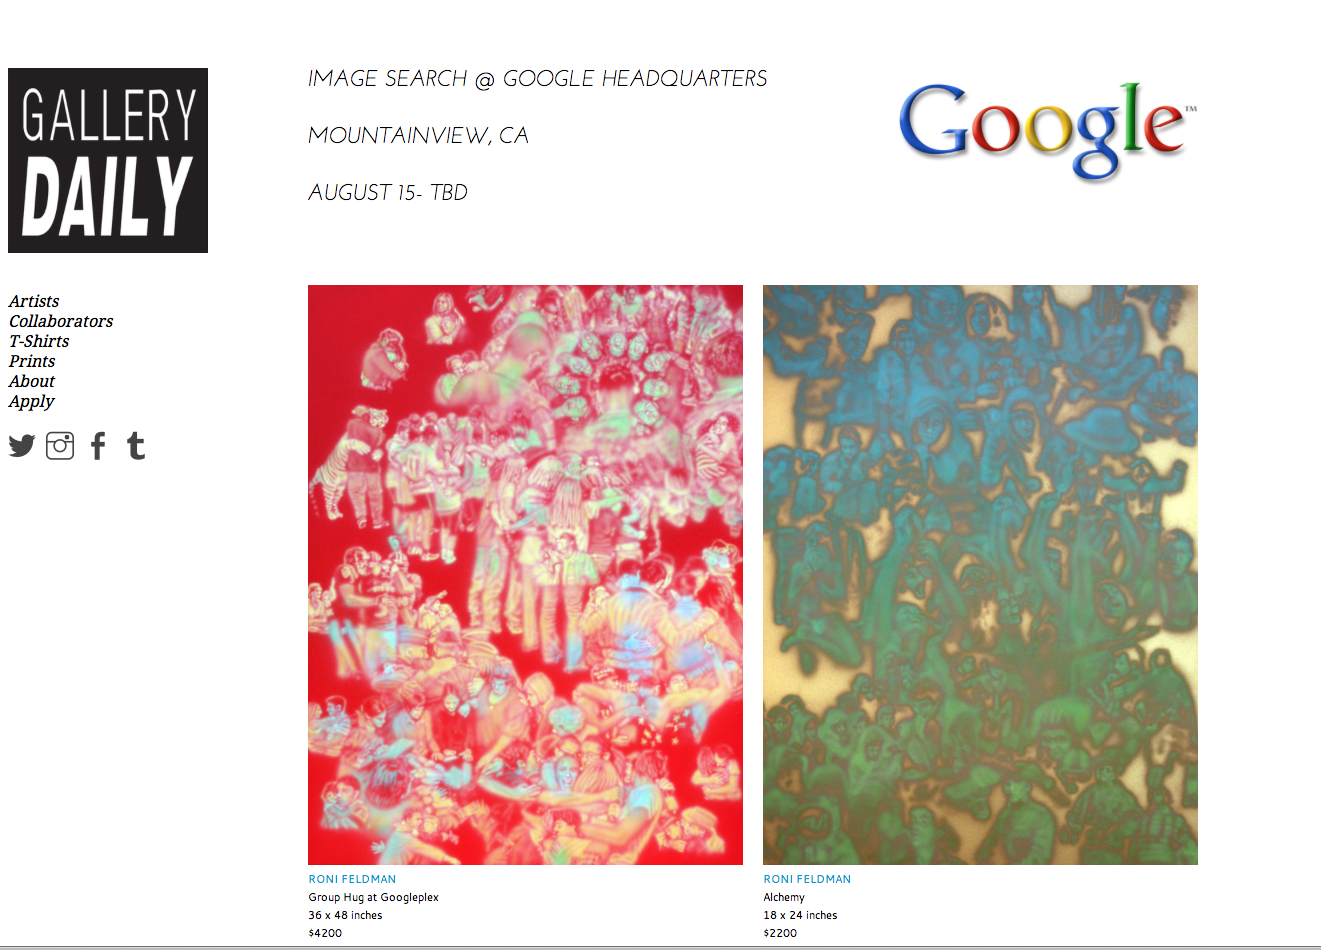 My work is up at Google Headquarters through Gallery Daily's show, IMAGE SEARCH. If you are around the area go check it out. To view the other work in the show click here.